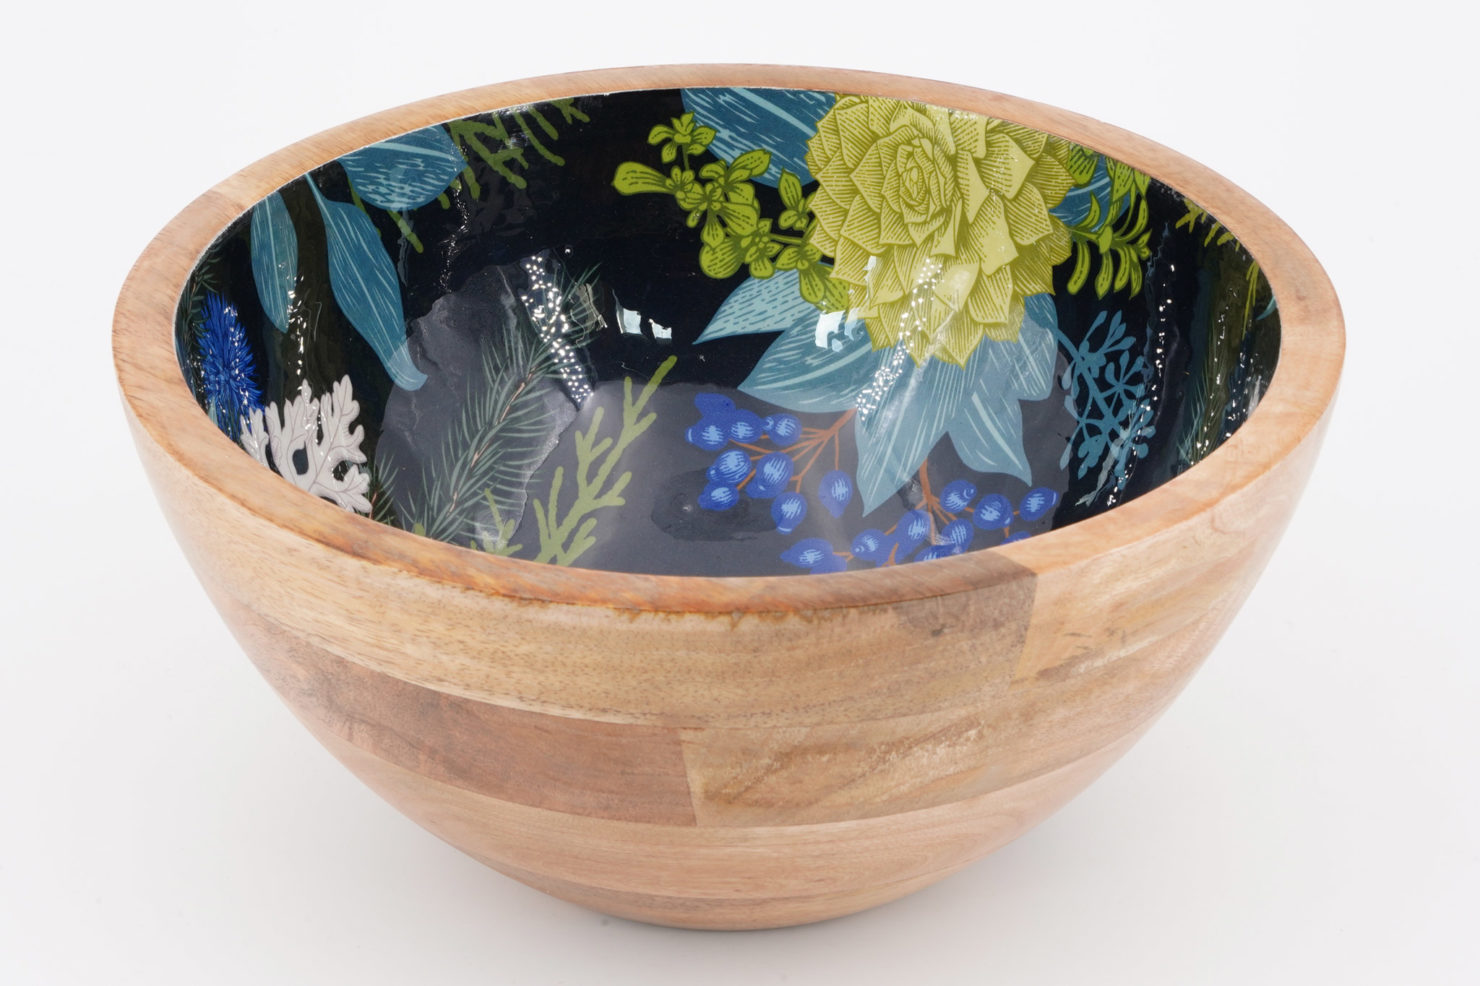 BOWL BLUE CHRISTMAS MANGO WOOD 25 CM - BY ROOM